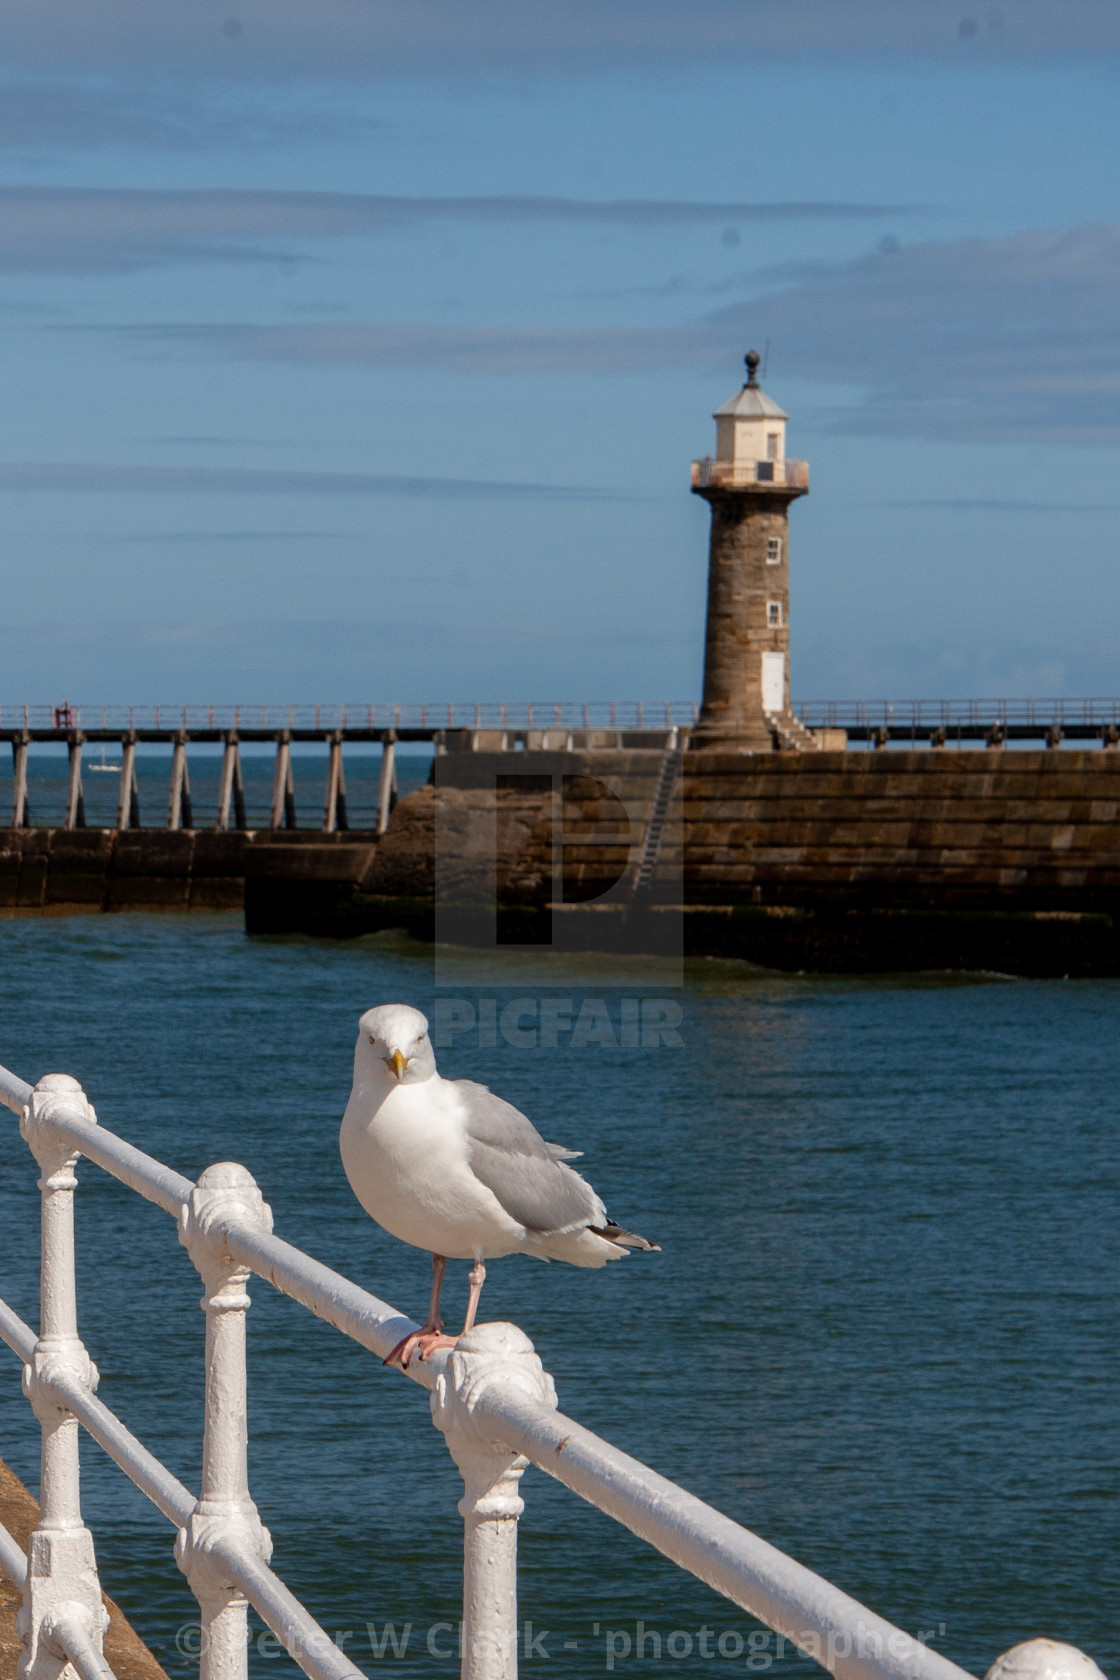 """Whitby, UK, East Yorkshire Coast. Herring Gull Sat on Harbour Railing. East Pier Lighthouse in the Background"" stock image"